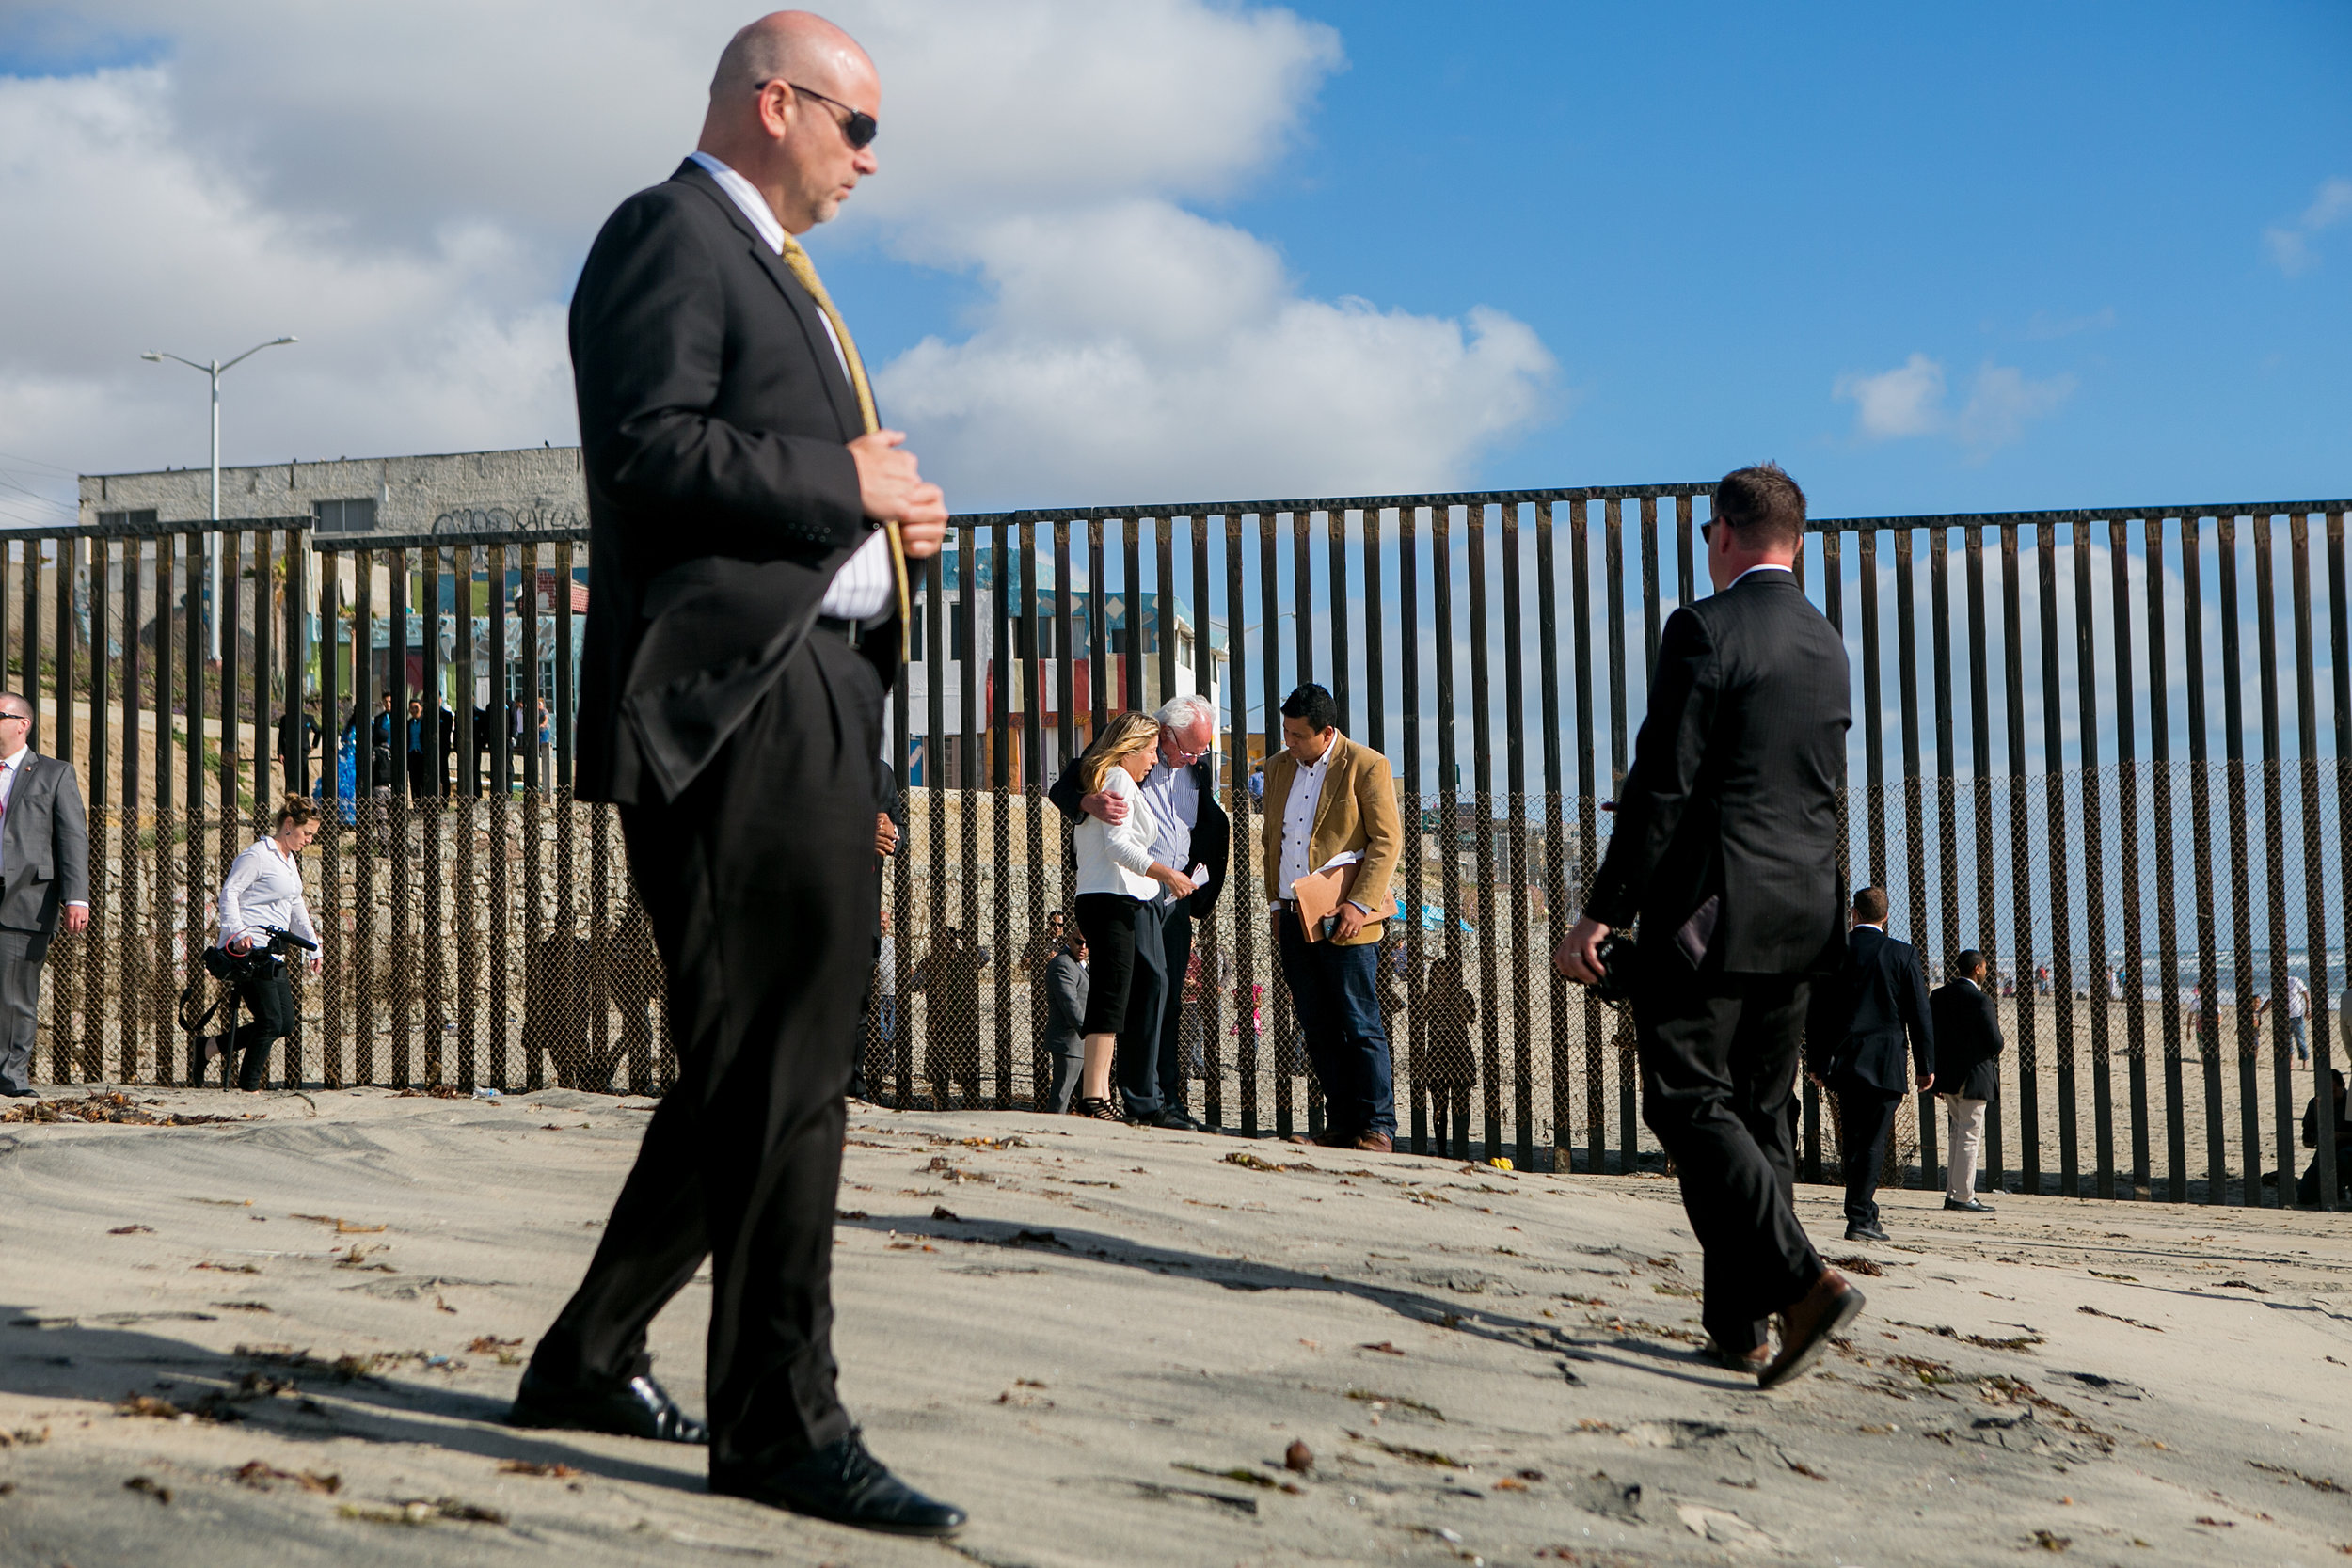 Bernie visited the U.S.-Mexico border at International Friendship Park alongside Maria Puga, whose husband Anastacio Hernandez Rojas died after an incident with Border Patrol agents and Christian Ramirez, director of Southern Border Communities Coalition in San Diego, California